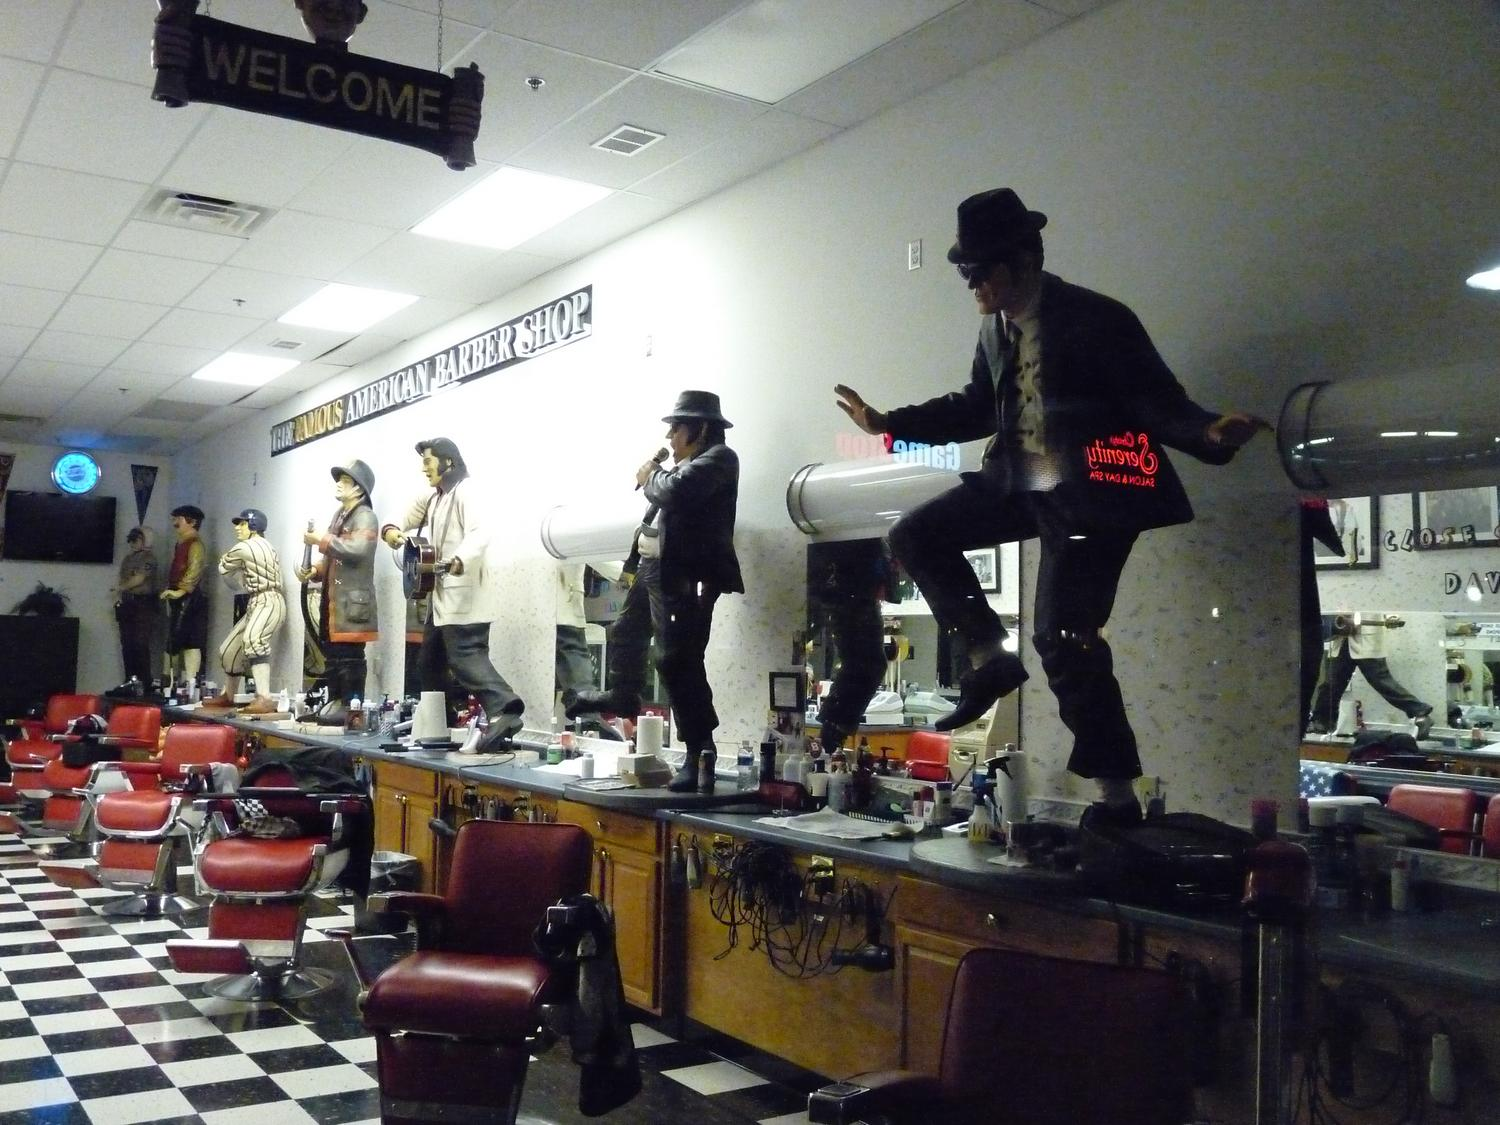 the Blues Brothers in a barber shop - At night, in the barber shop - Panasonic DMC-FZ28 - Tony Karp, design, art, photography, techno-impressionist, techno-impressionism, aerial photography , drone , drones , dji , mavic pro , video , 3D printing - Books -